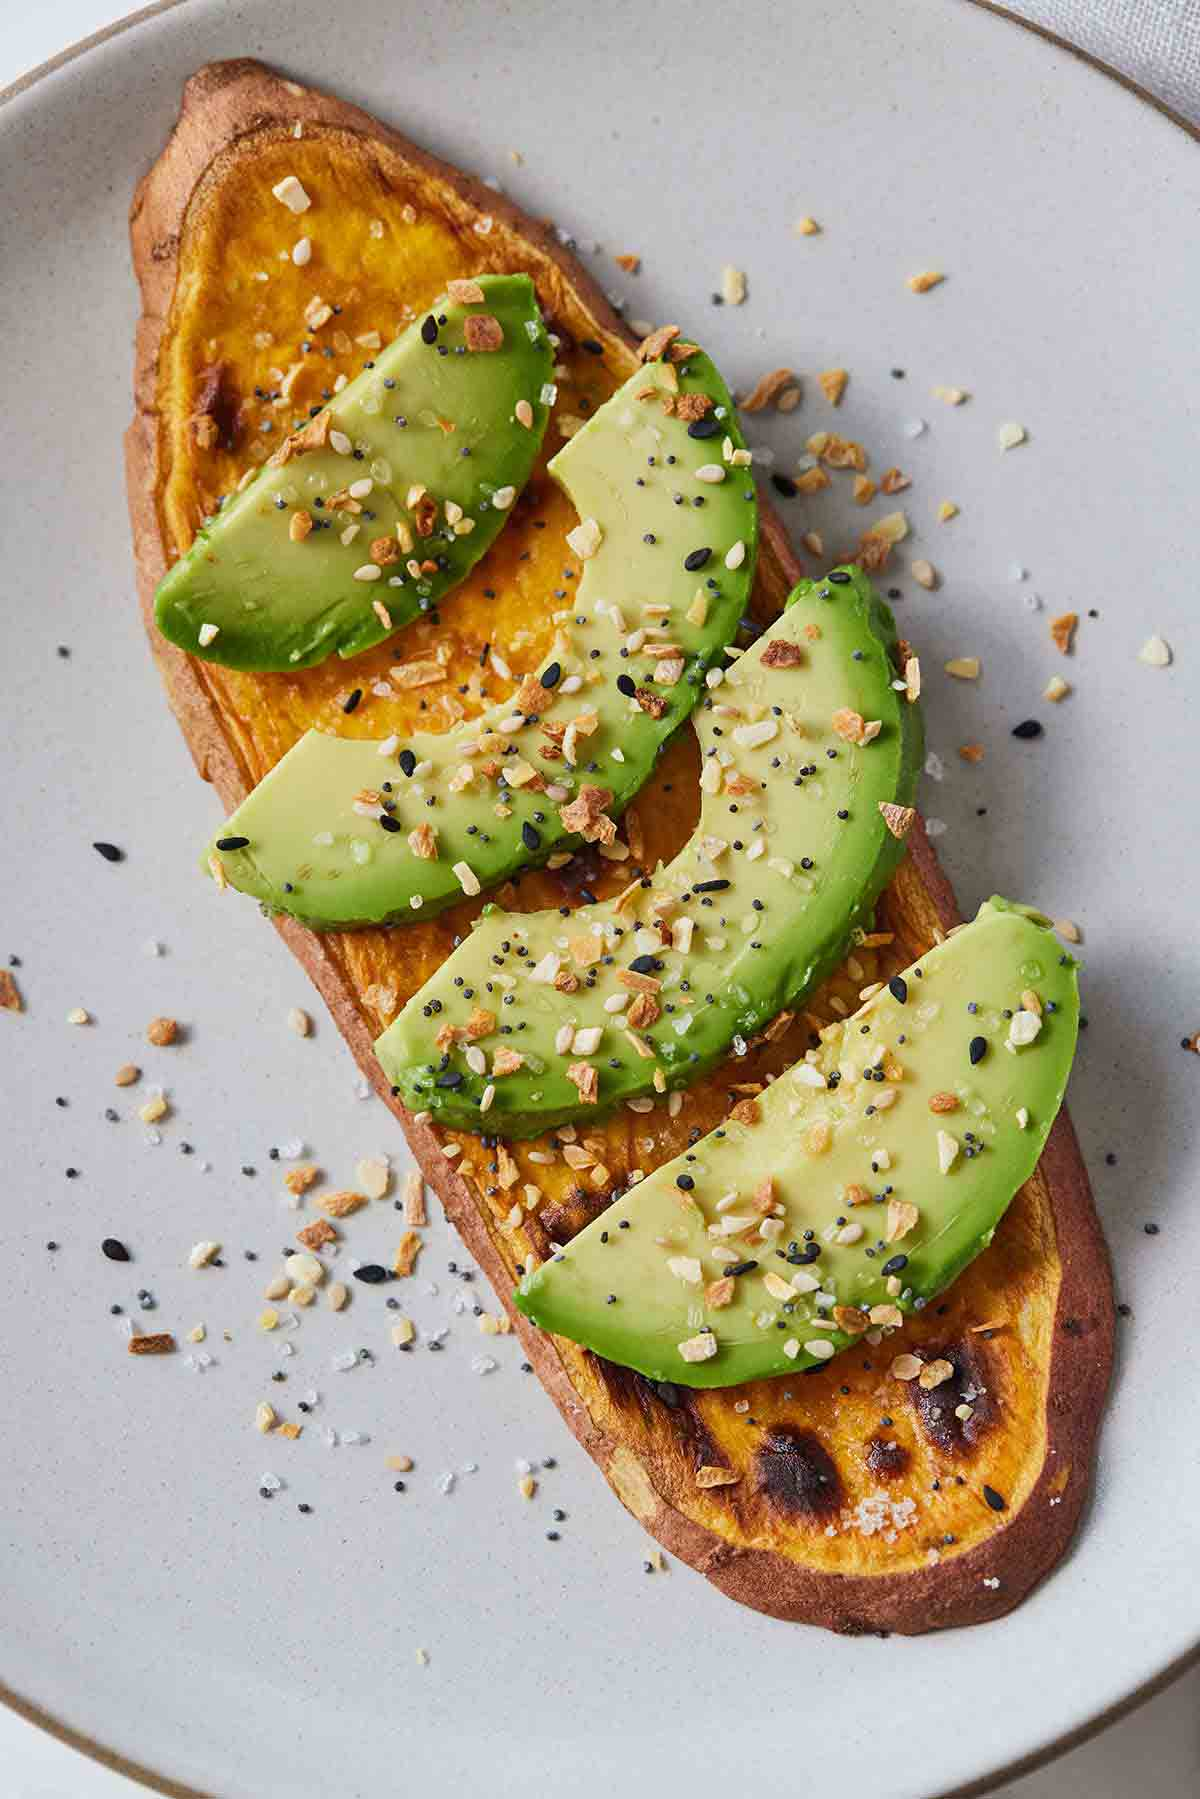 Overhead view of a sweet potato toast with sliced avocado on top.